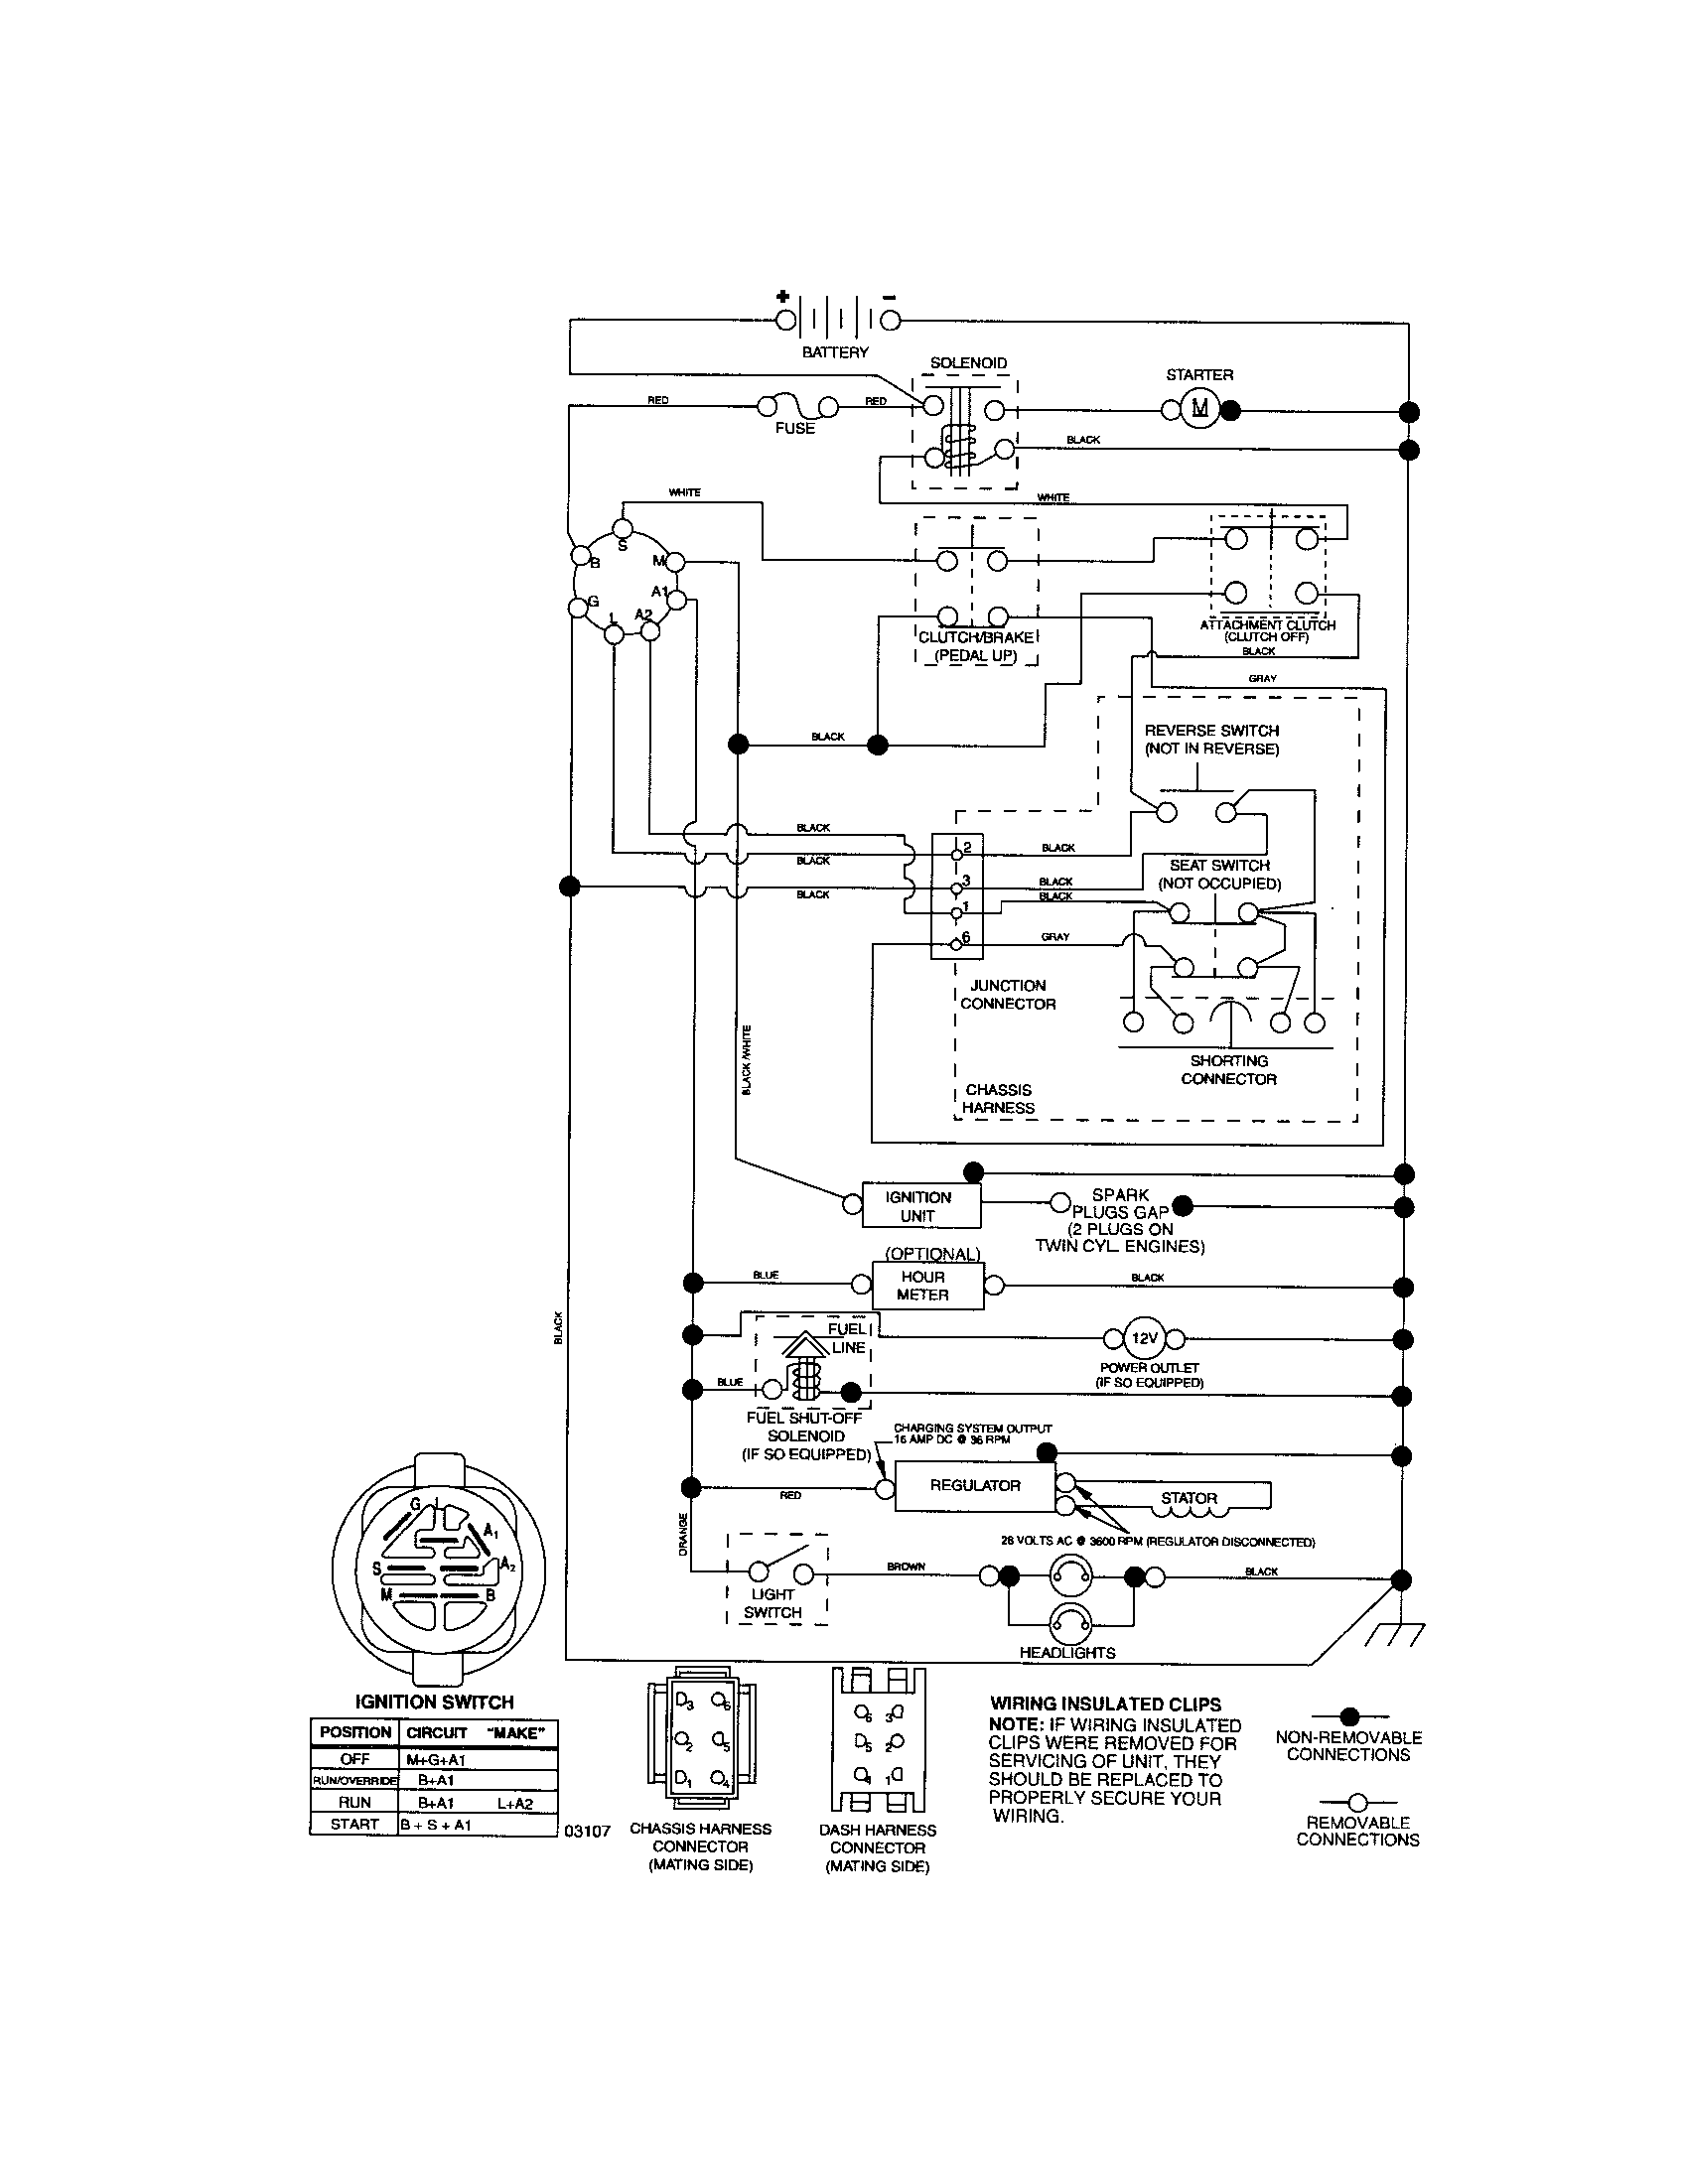 6af5f1447fd13c8443376822ddc1e105 craftsman riding mower electrical diagram wiring diagram  at mifinder.co